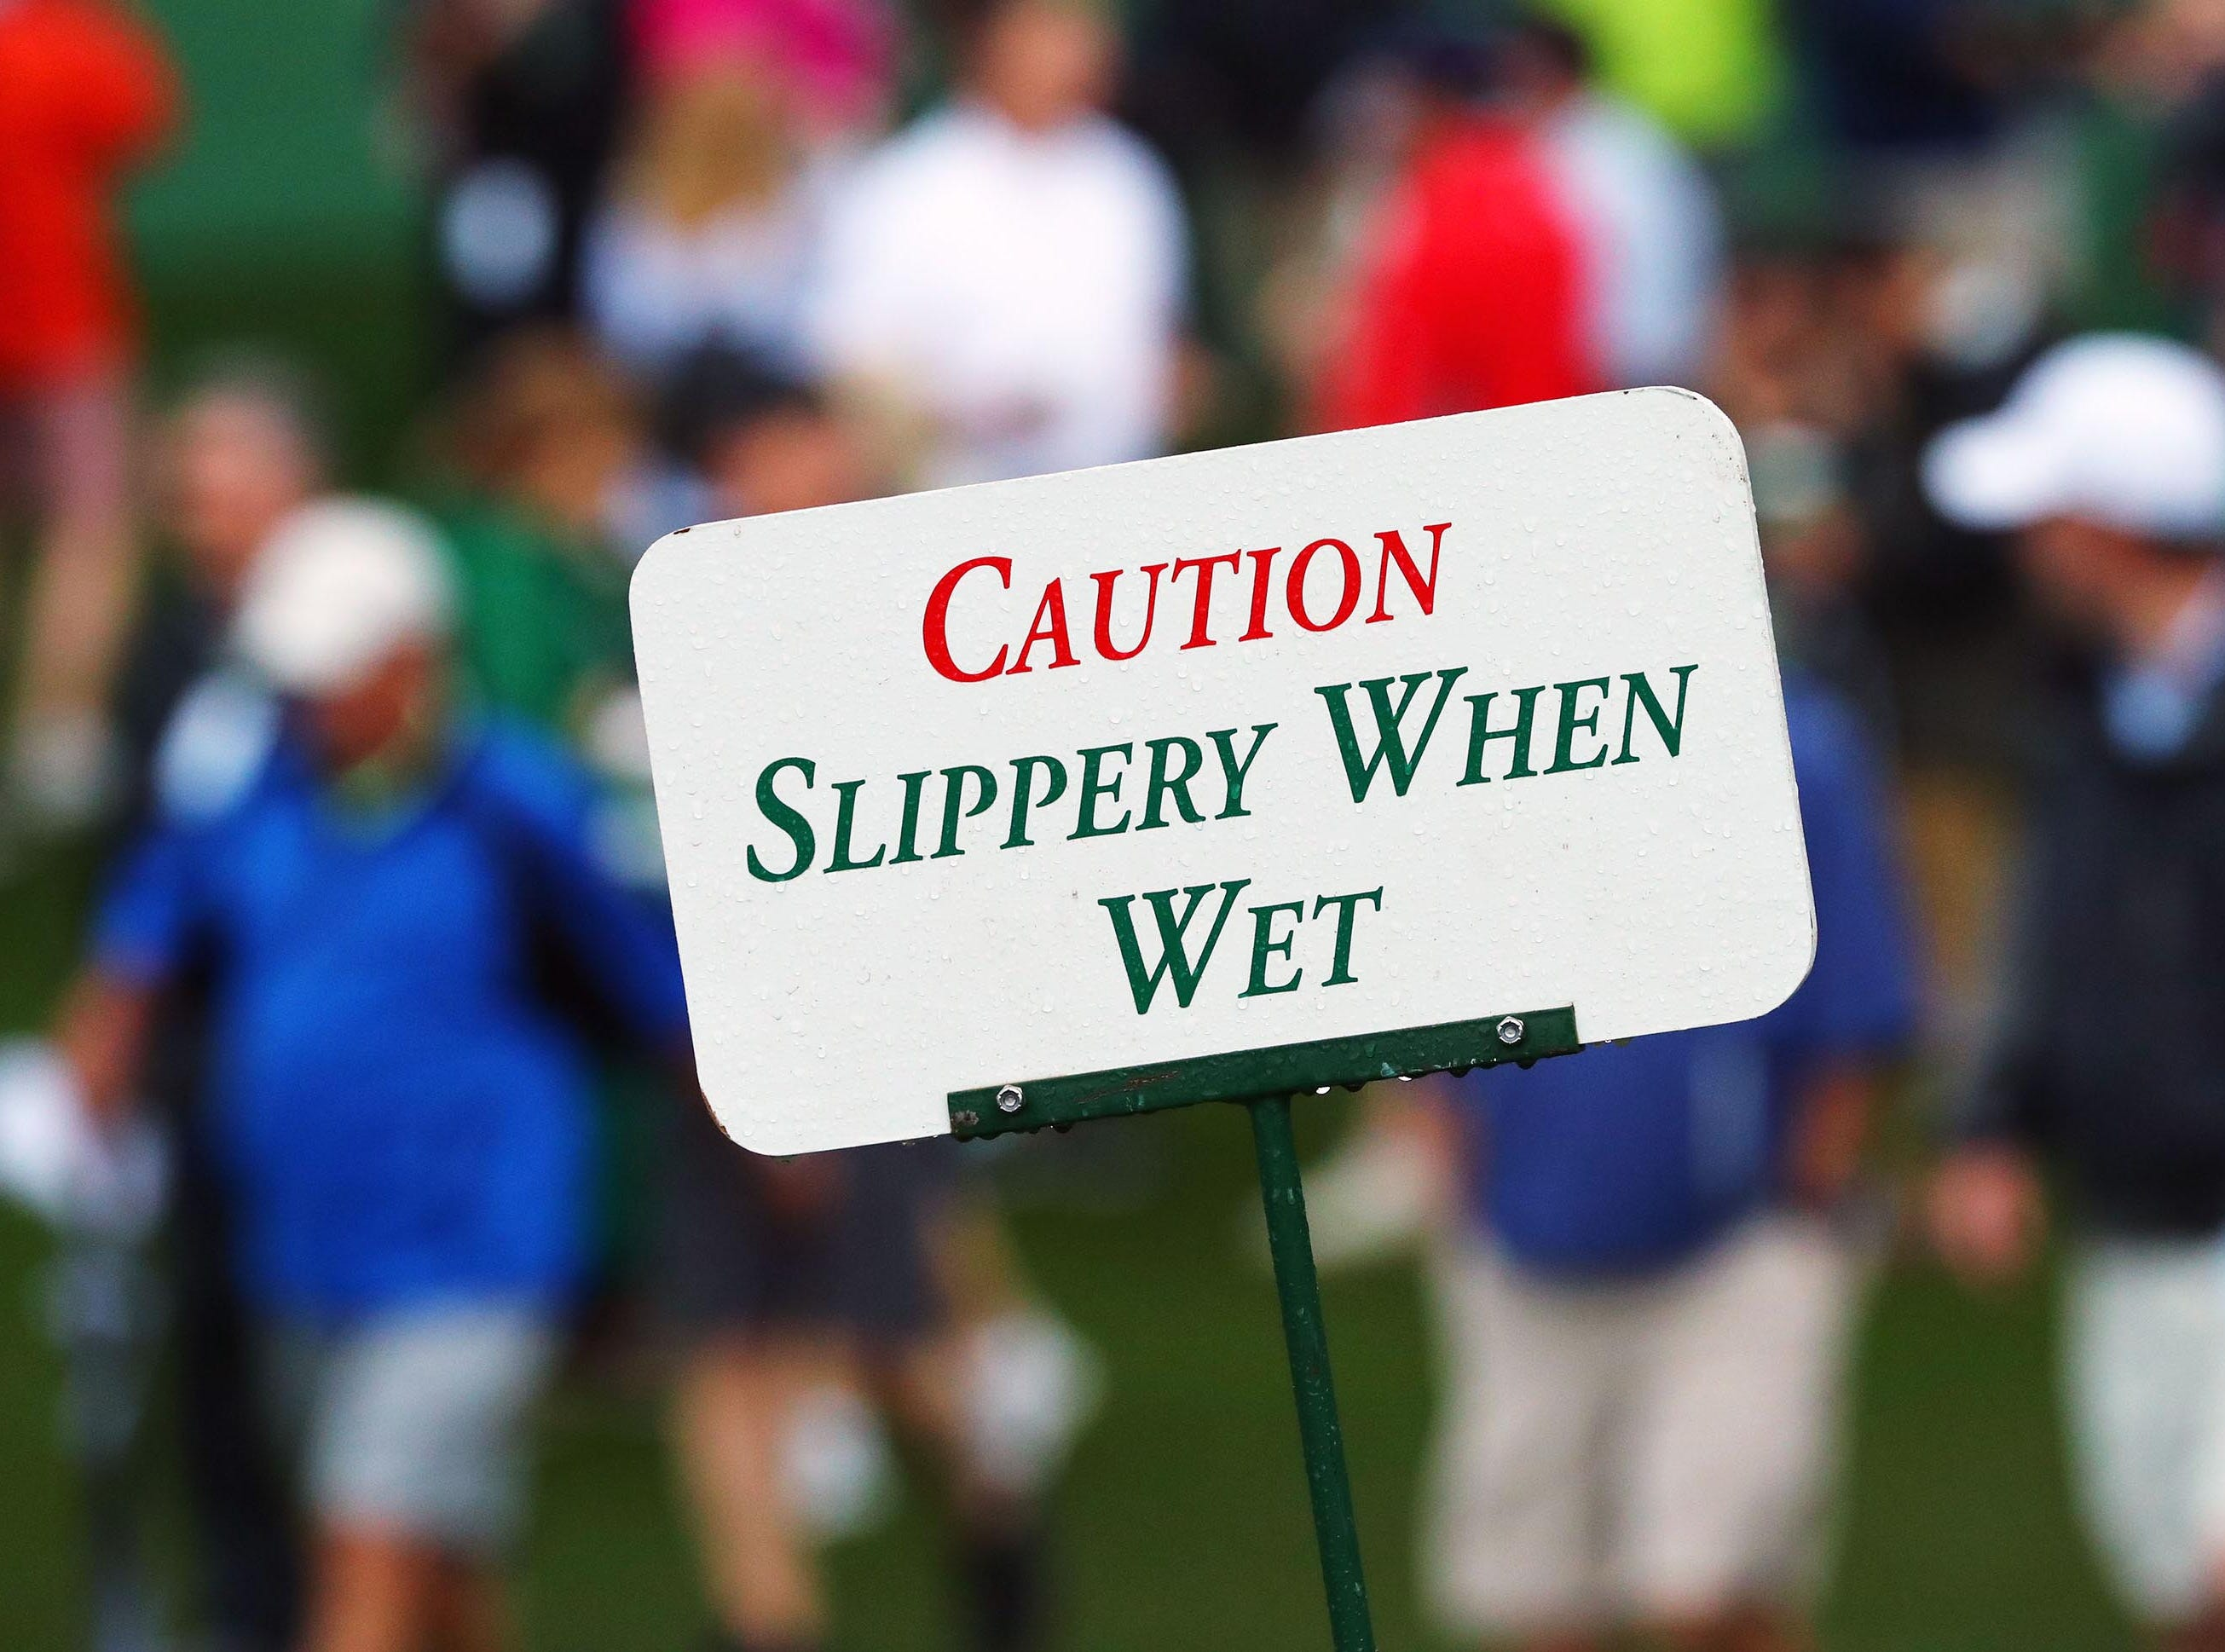 Apr 9, 2019; Augusta, GA, USA; Patrons take the course under a weather warning with rain and the threat of thunderstorms during a practice round for The Masters golf tournament at Augusta National Golf Club. Mandatory Credit: Rob Schumacher-USA TODAY Sports